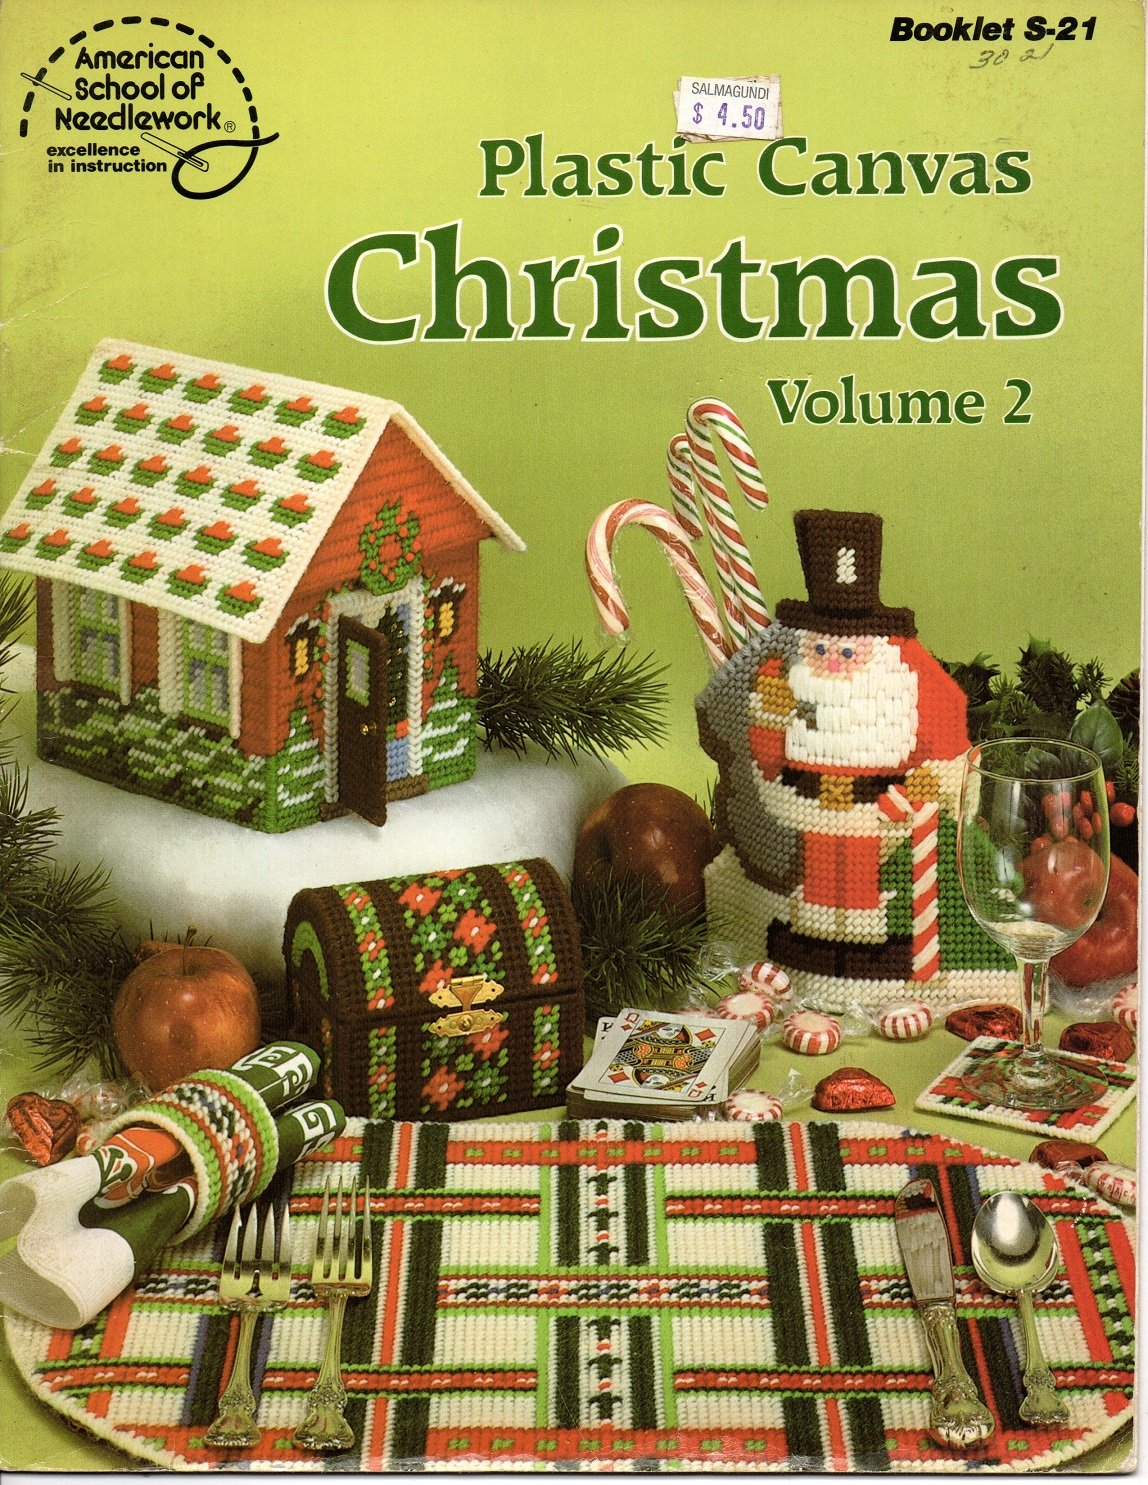 Plastic Canvas Christmas Vol 2 - American School of Needlework S-21